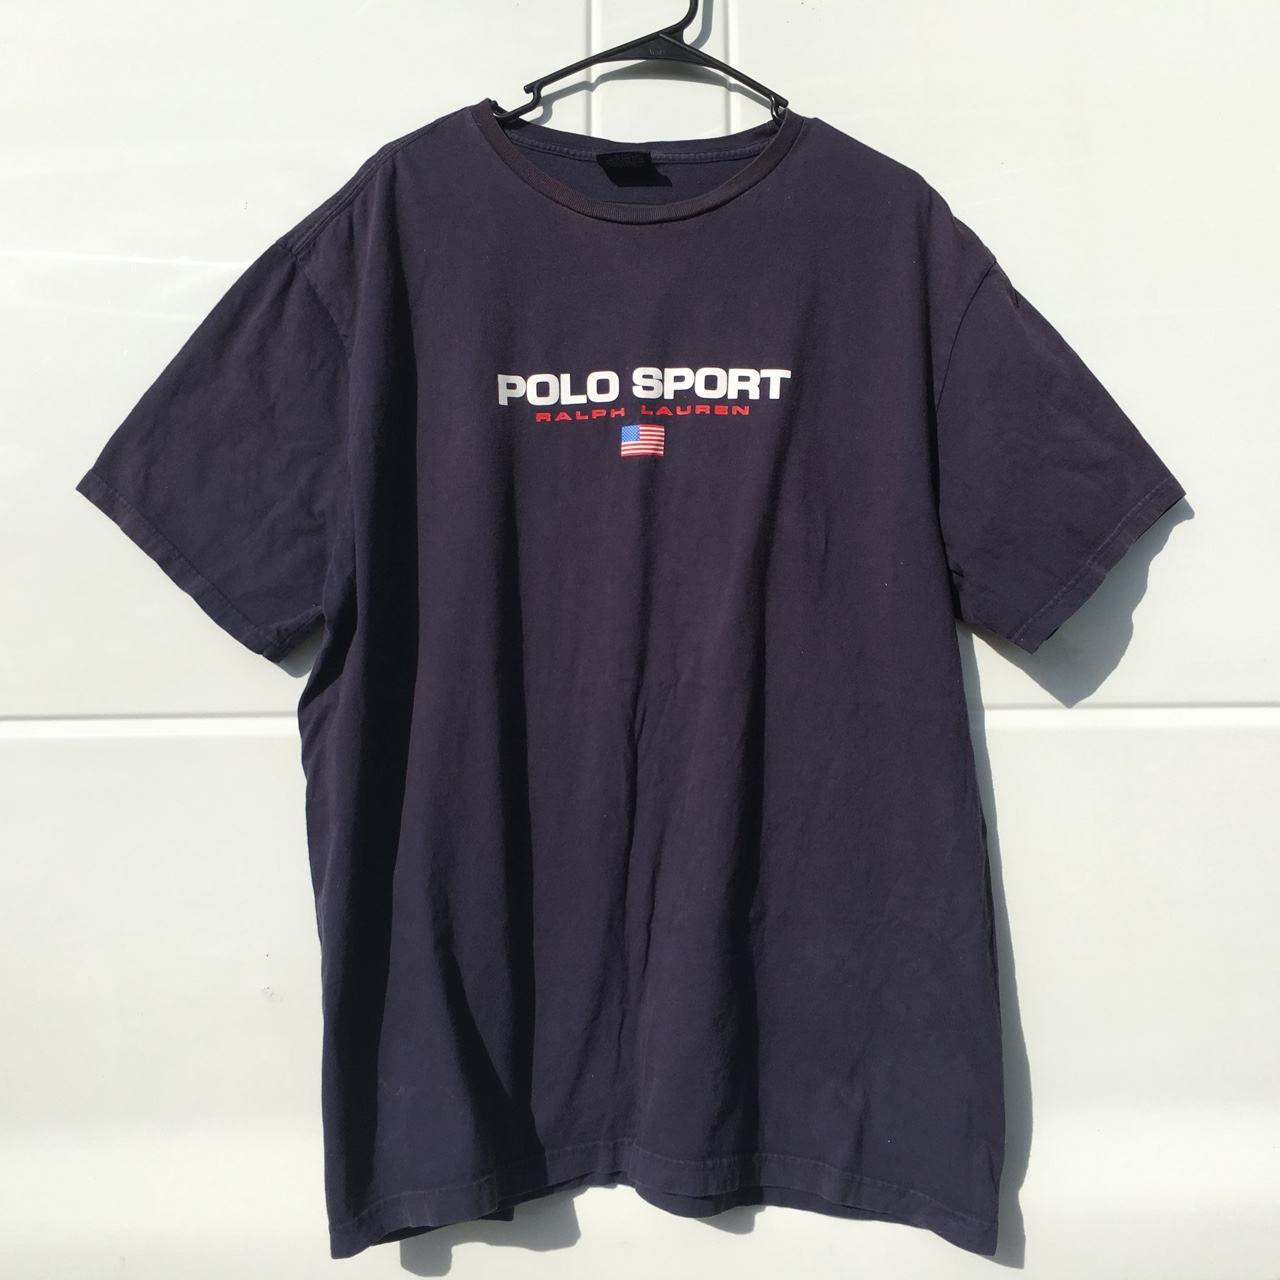 Polo sport t shirt features screen printed for Screen printing polo shirts